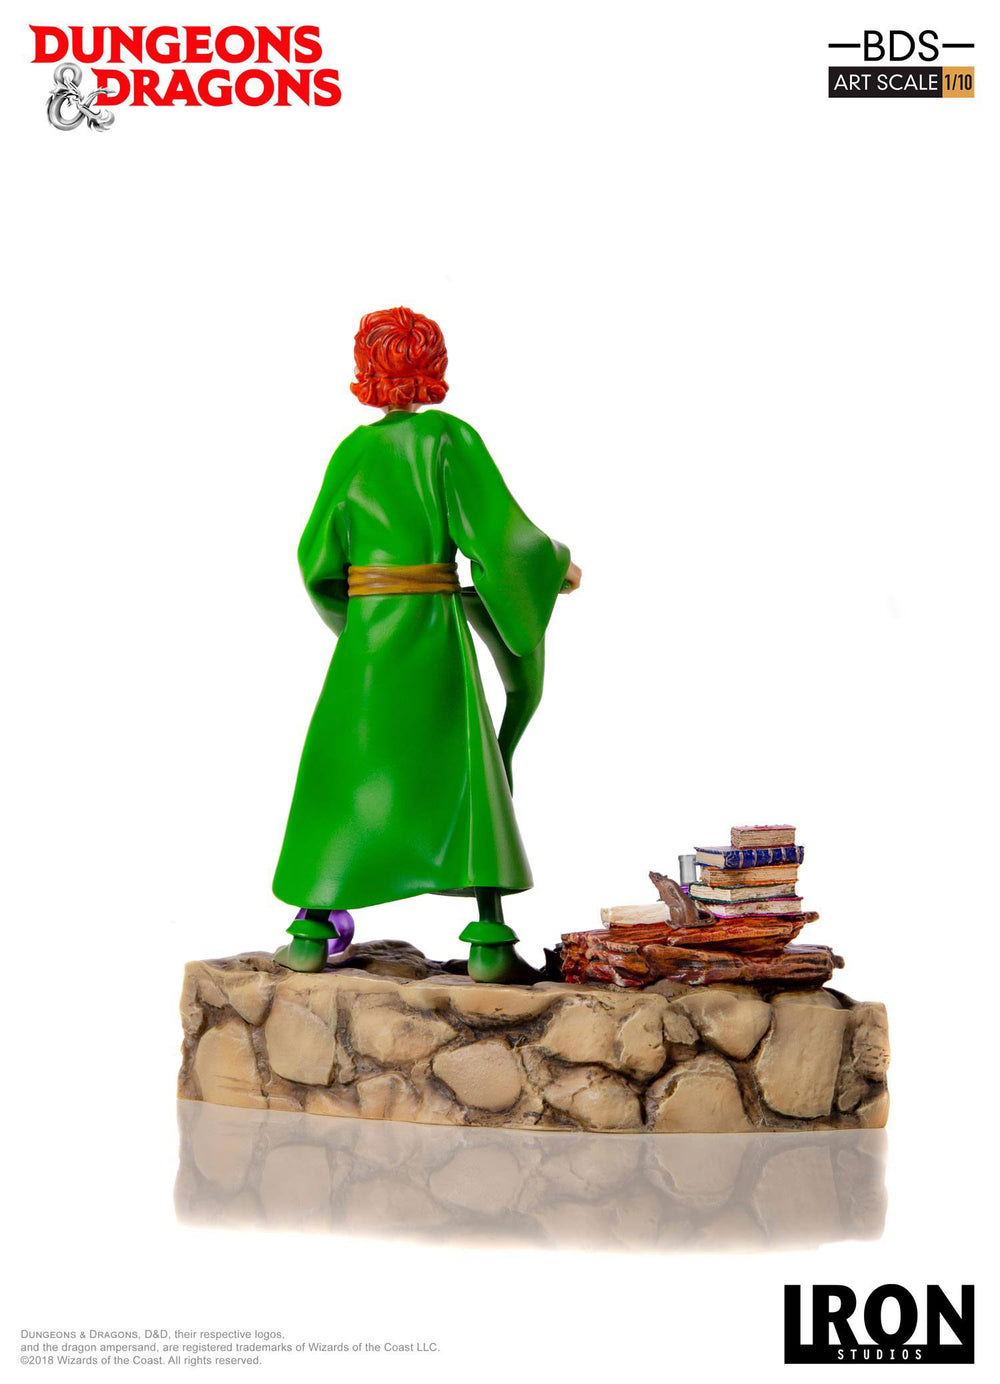 Iron Studios Dungeons & Dragons Presto the Magician Battle Diorama Series 1/10 Statue